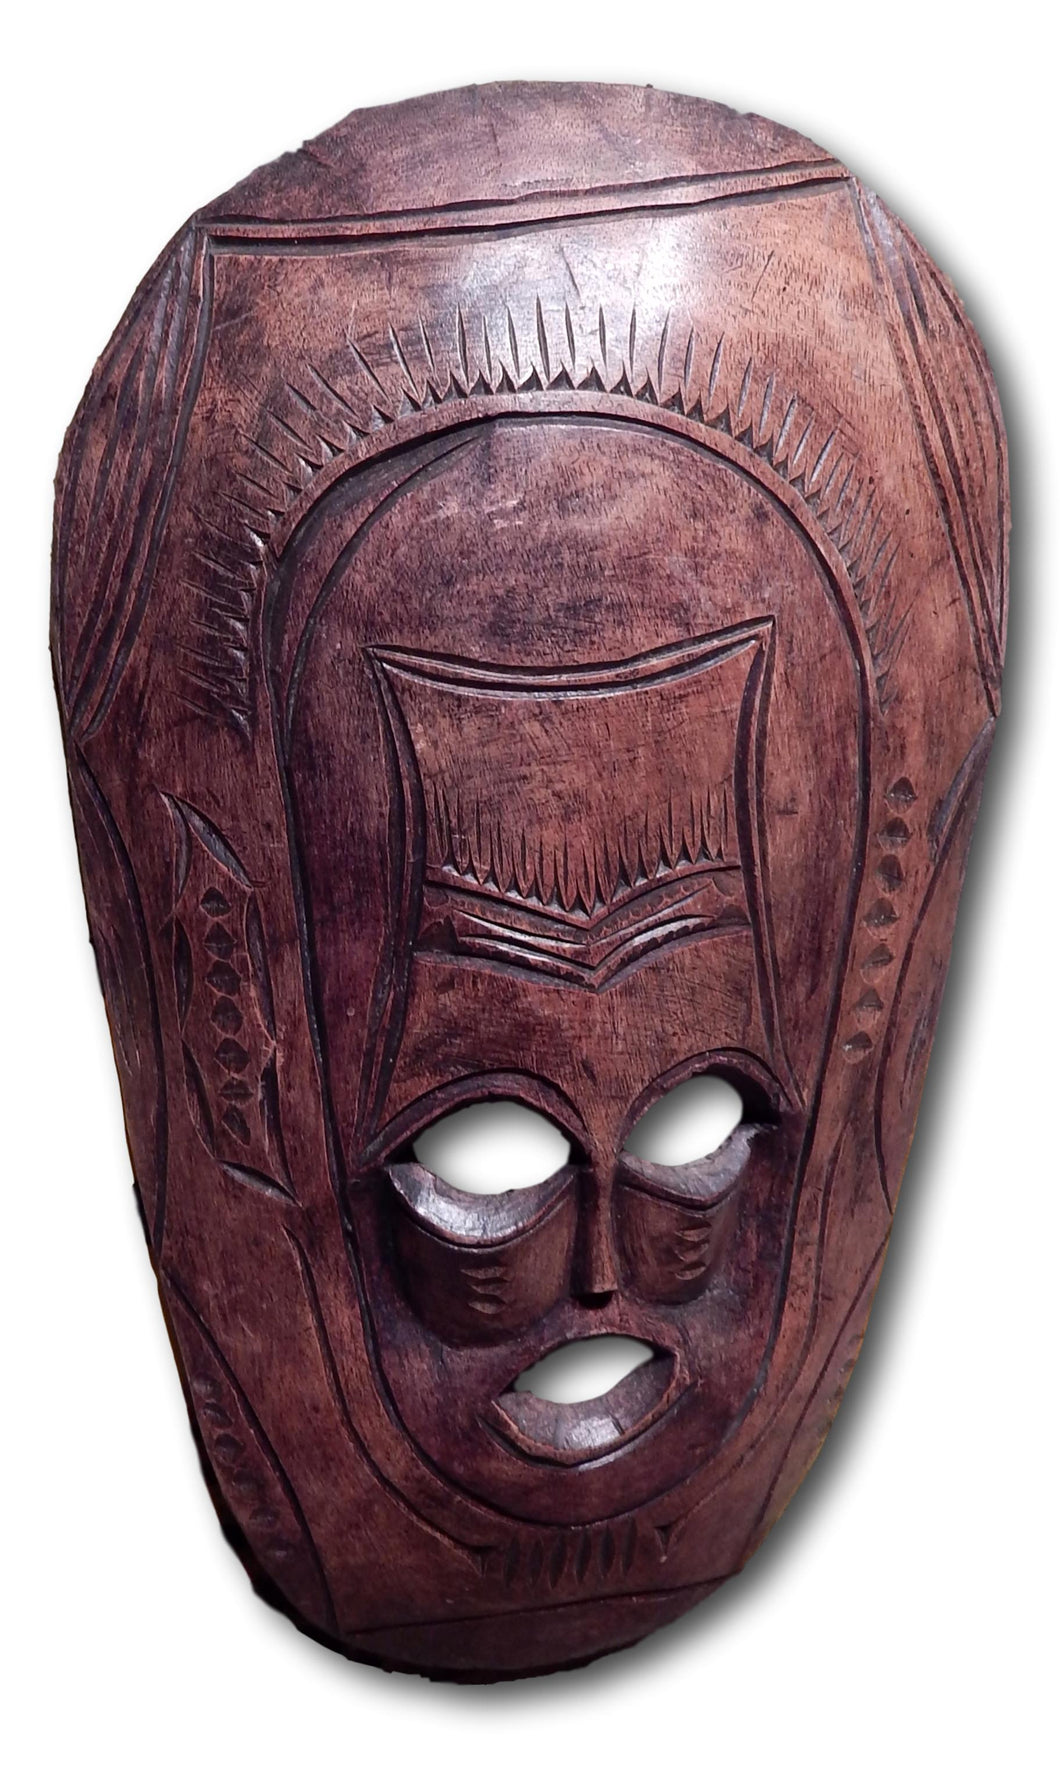 Mask art decoration handcrafted from Mukwa wood